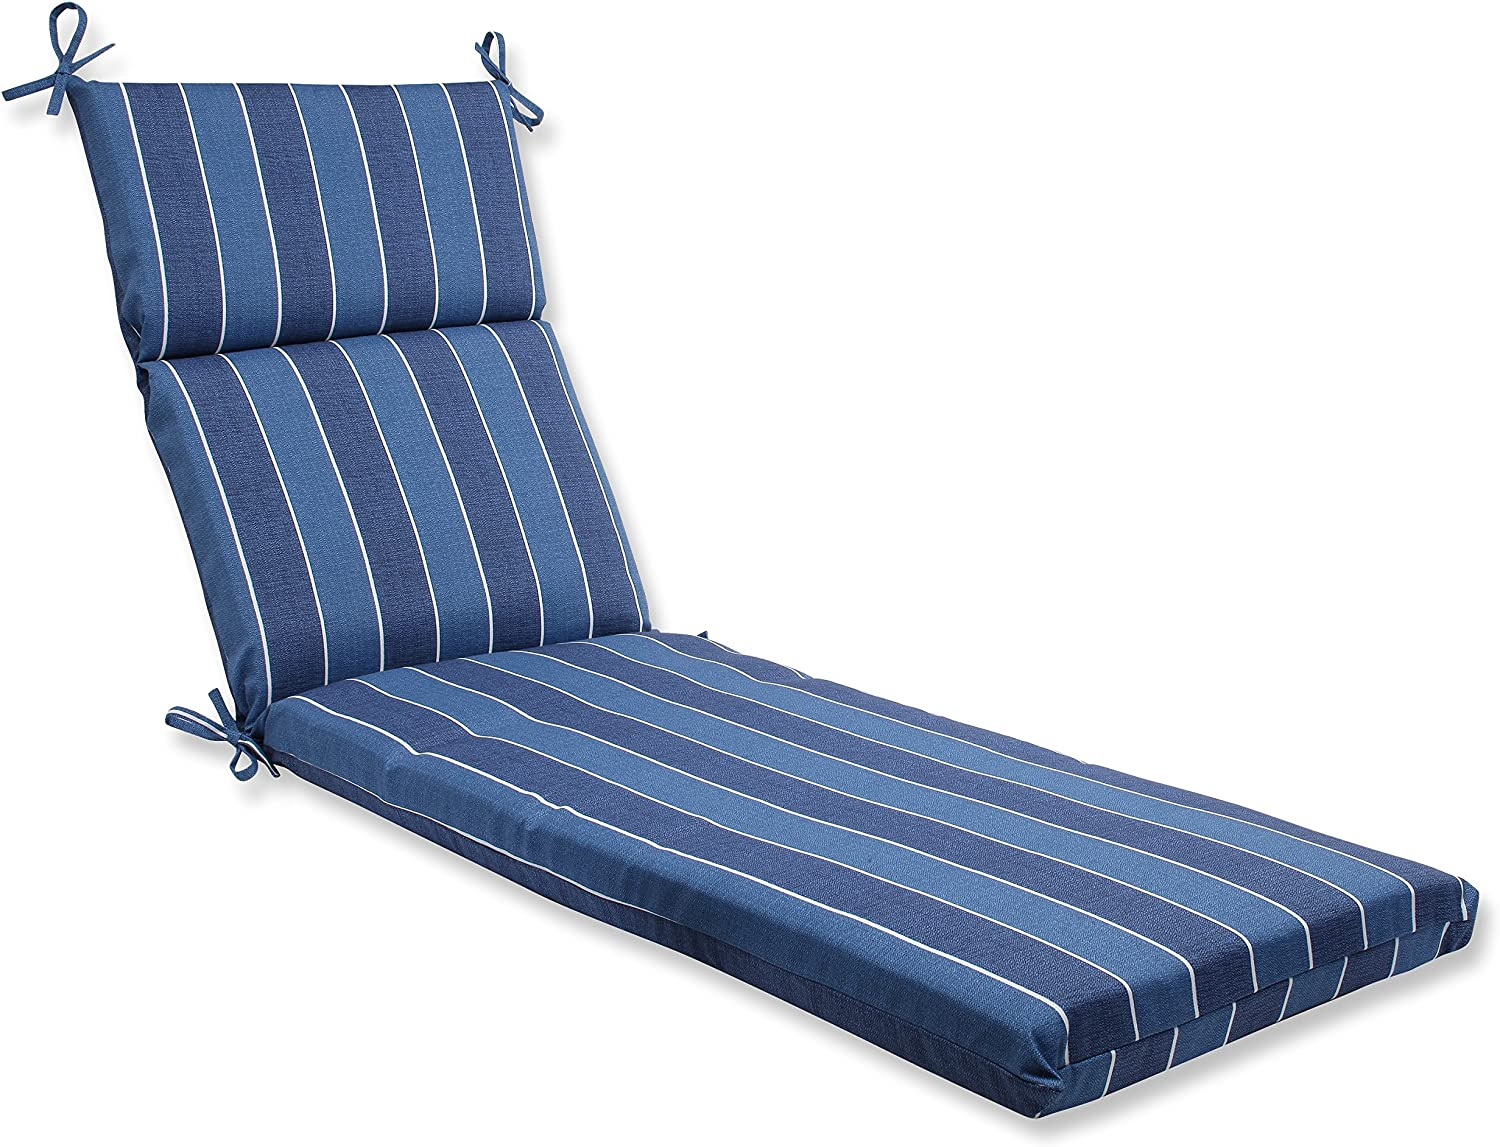 Pillow Perfect Outdoor Wickenburg Chaise Lounge Cushion, Indigo